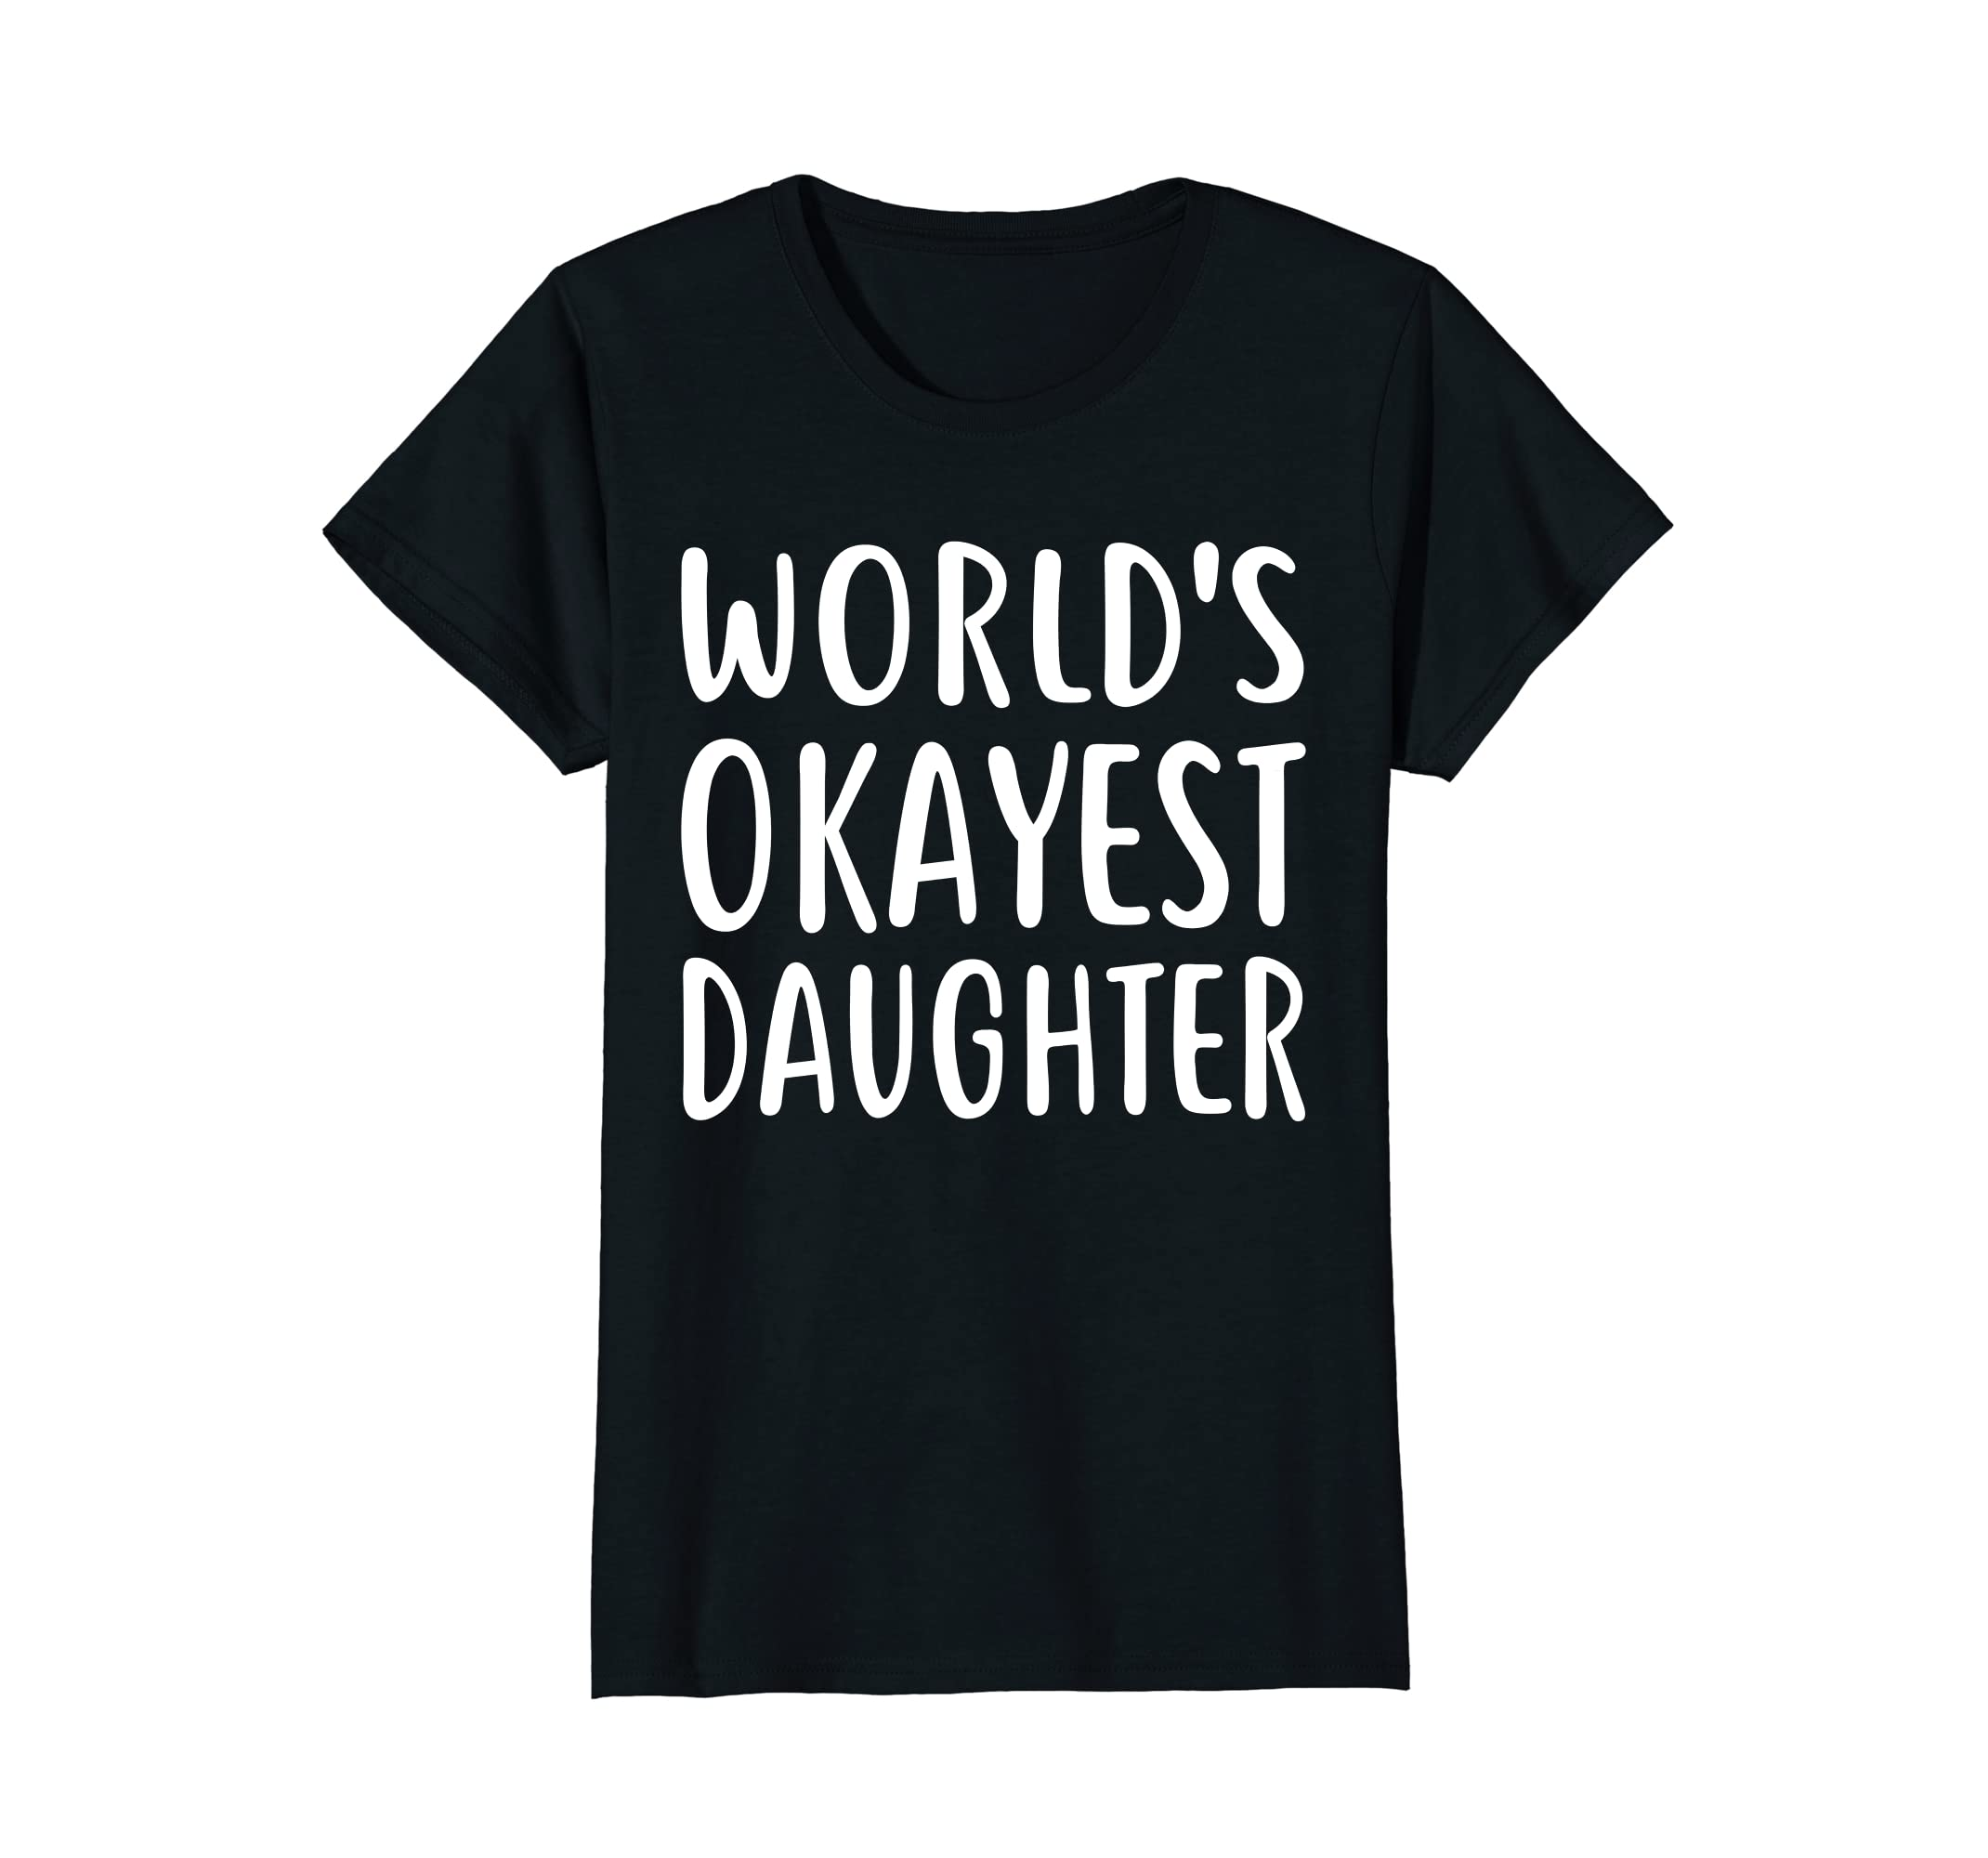 World's Okayest Daughter T-Shirt Great Mother's Day Gift Tee-alottee gift